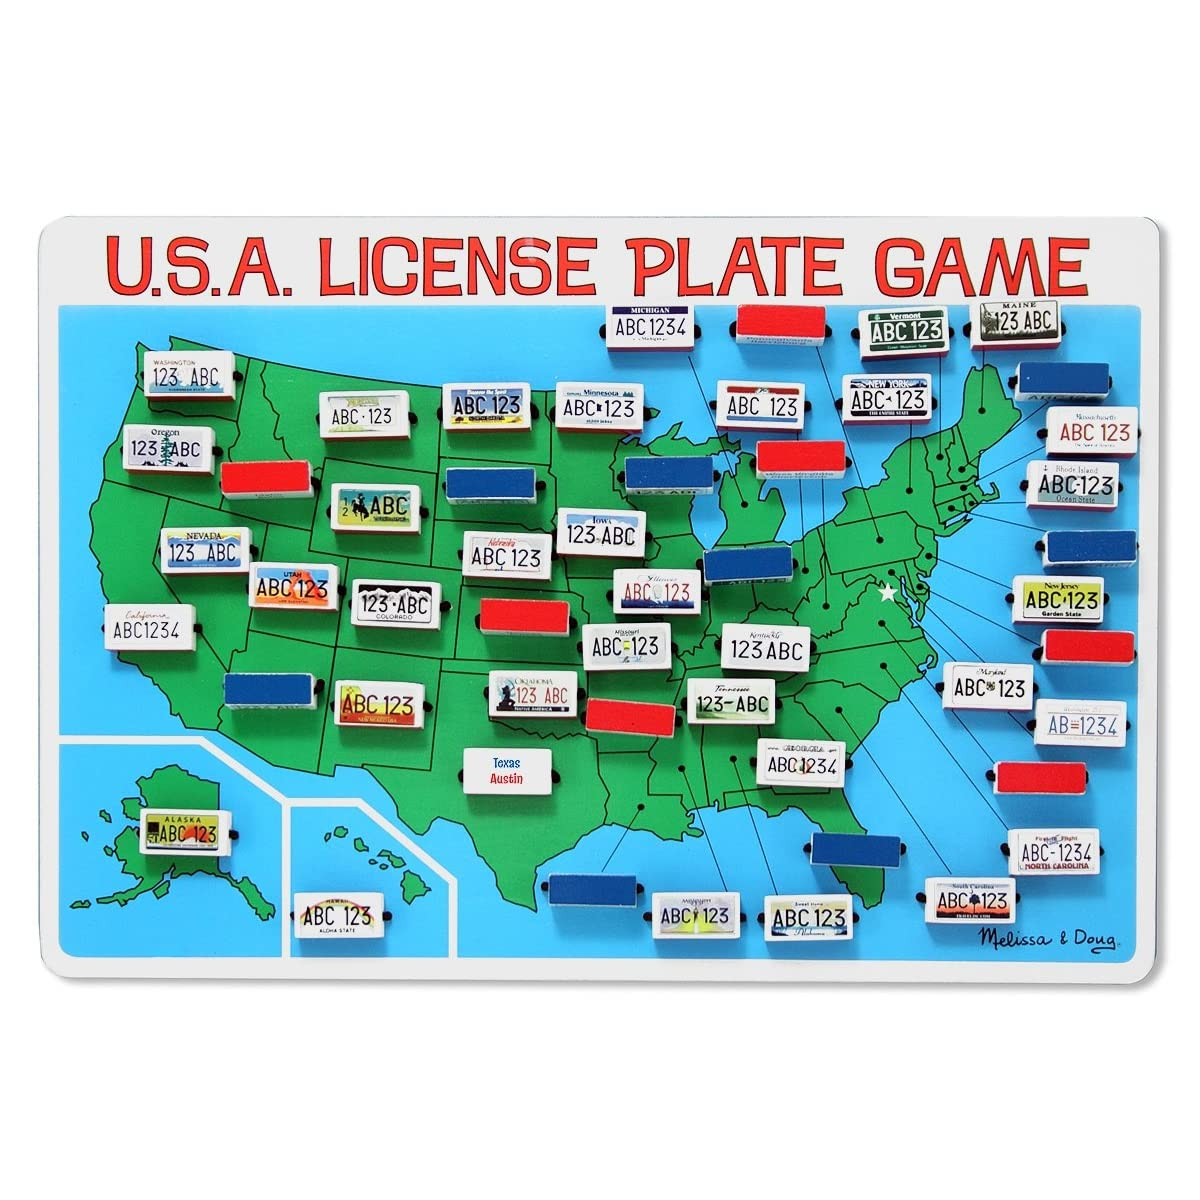 Melissa and Doug's License Plate Game